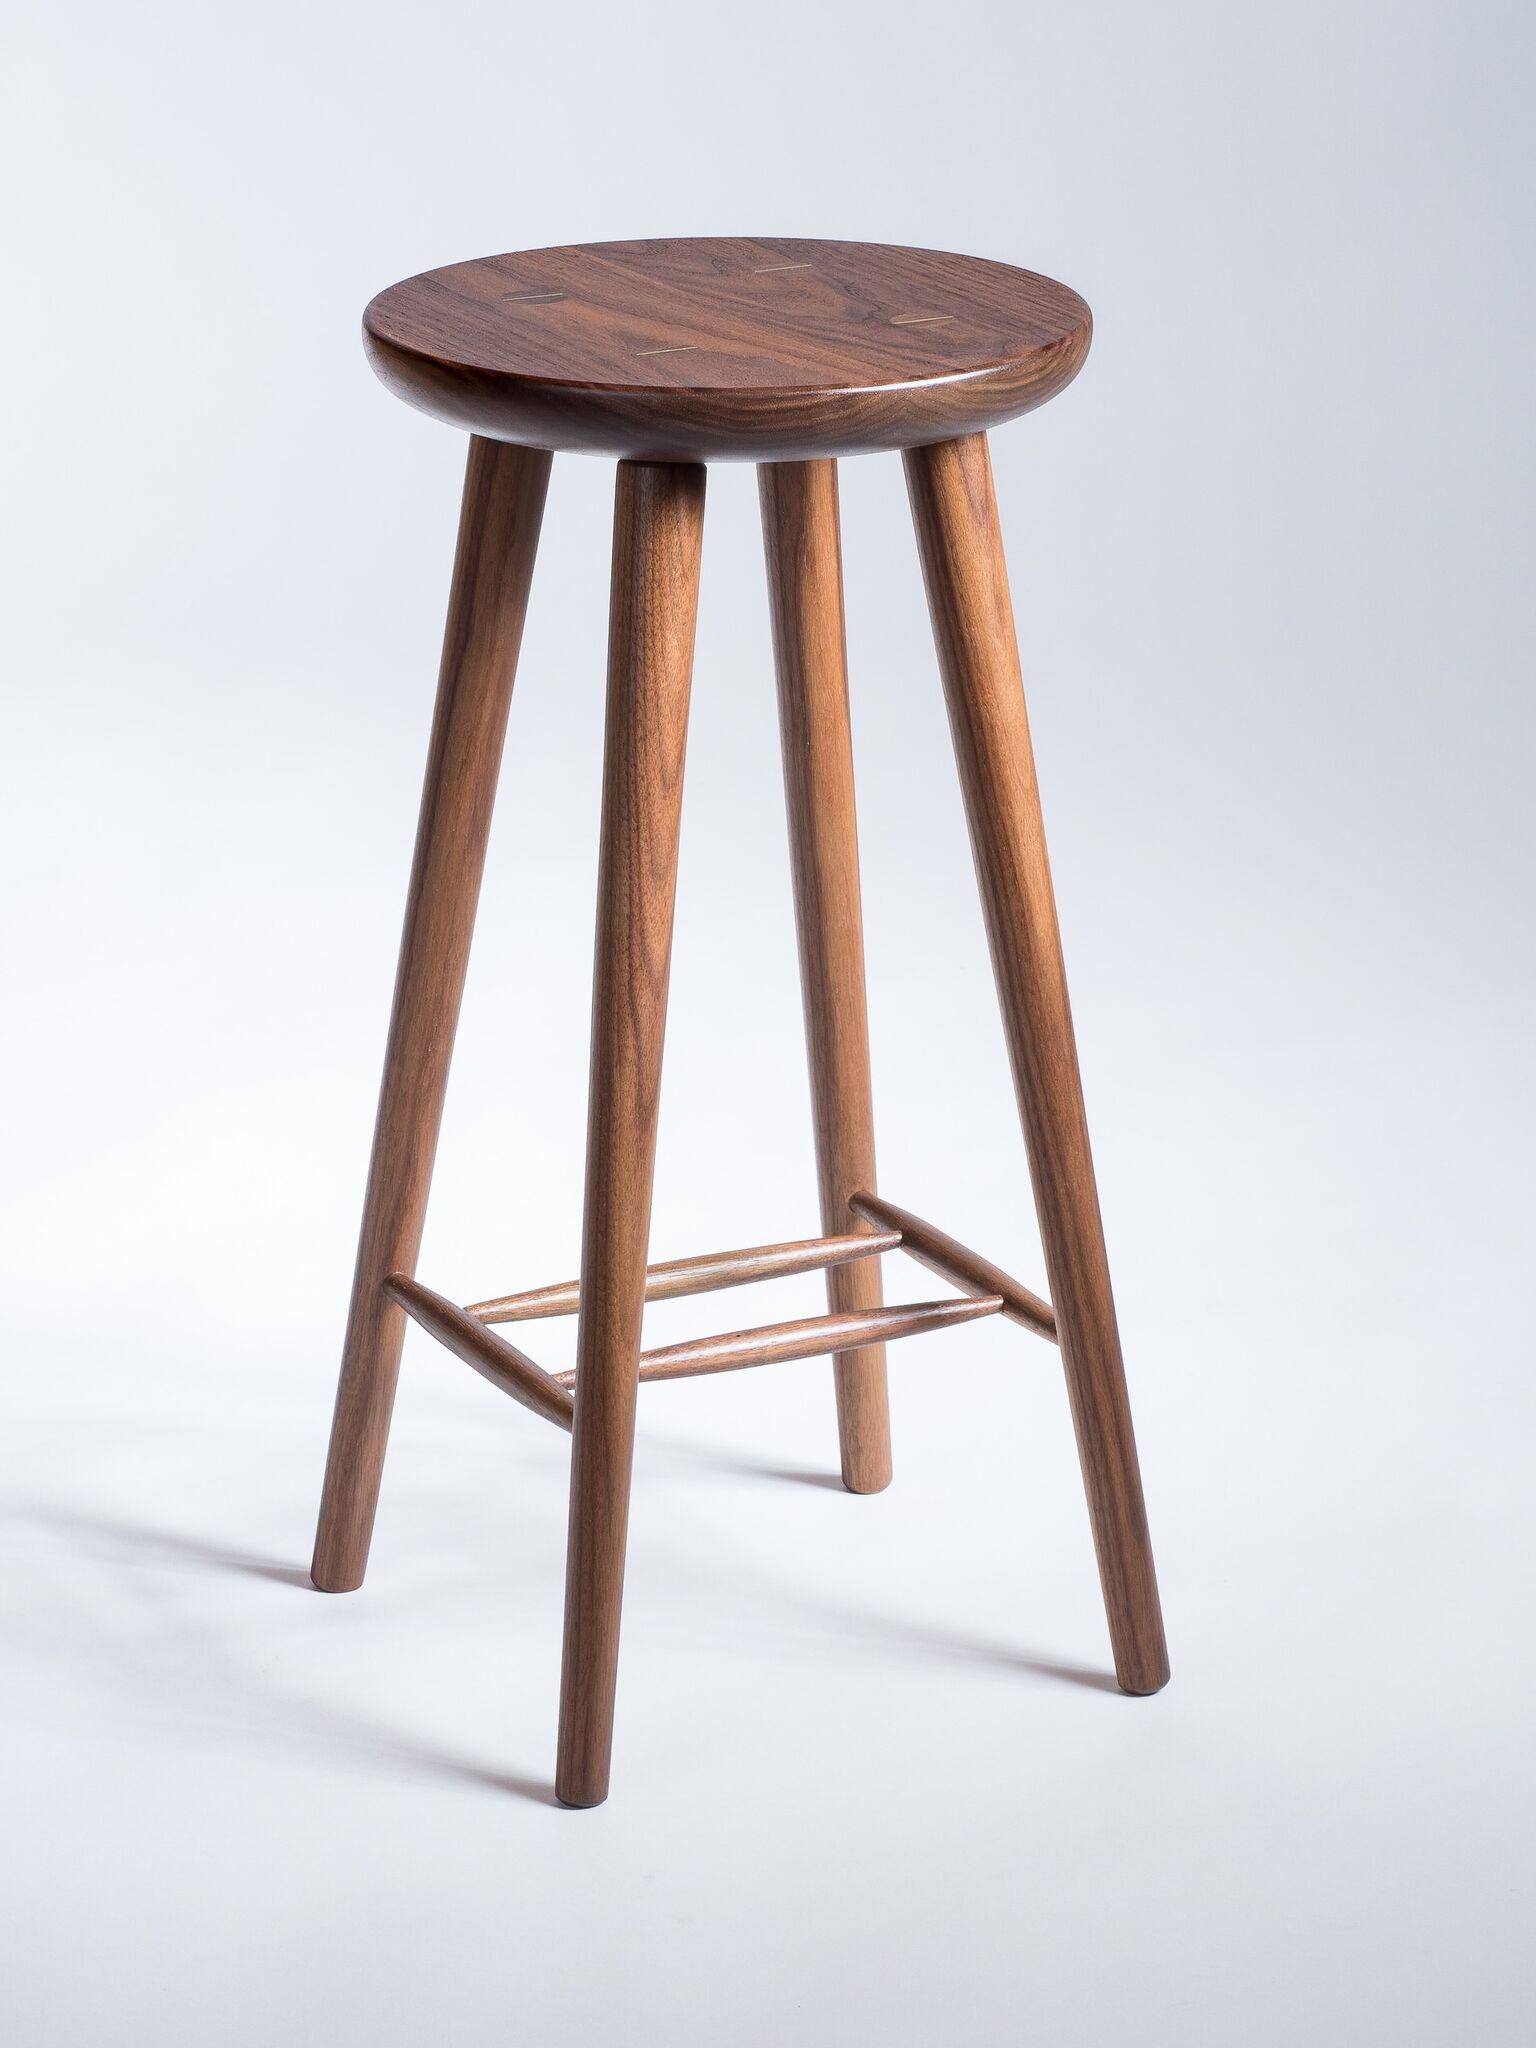 Sleek & Sturdy - Constructed with traditional mortise and tenon joinery, this modern stool was built to last.